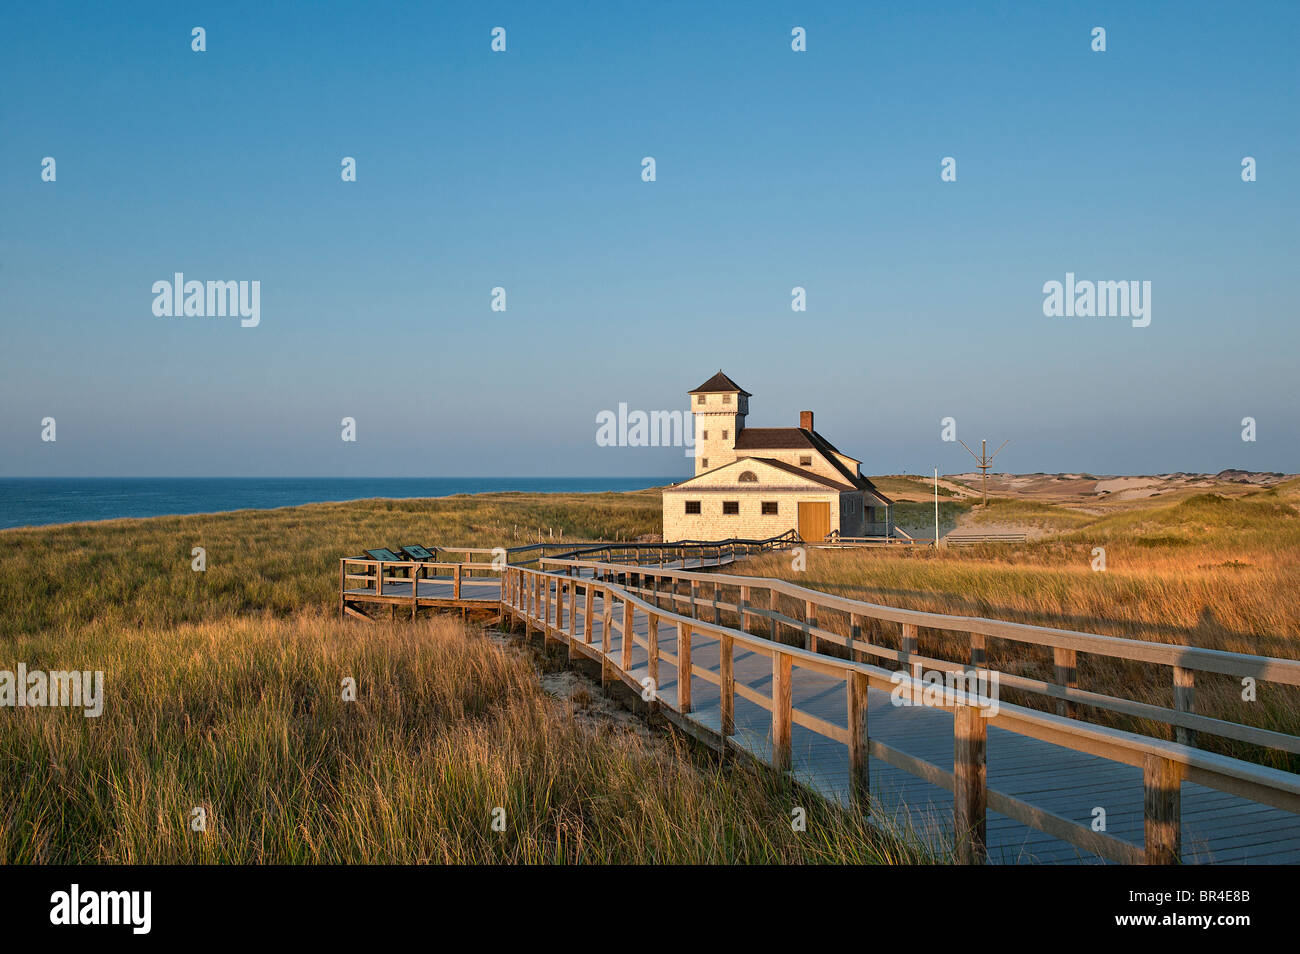 Old harbor life saving museum, Race Point, Provincetown, Cape Cod, MA, - Stock Image